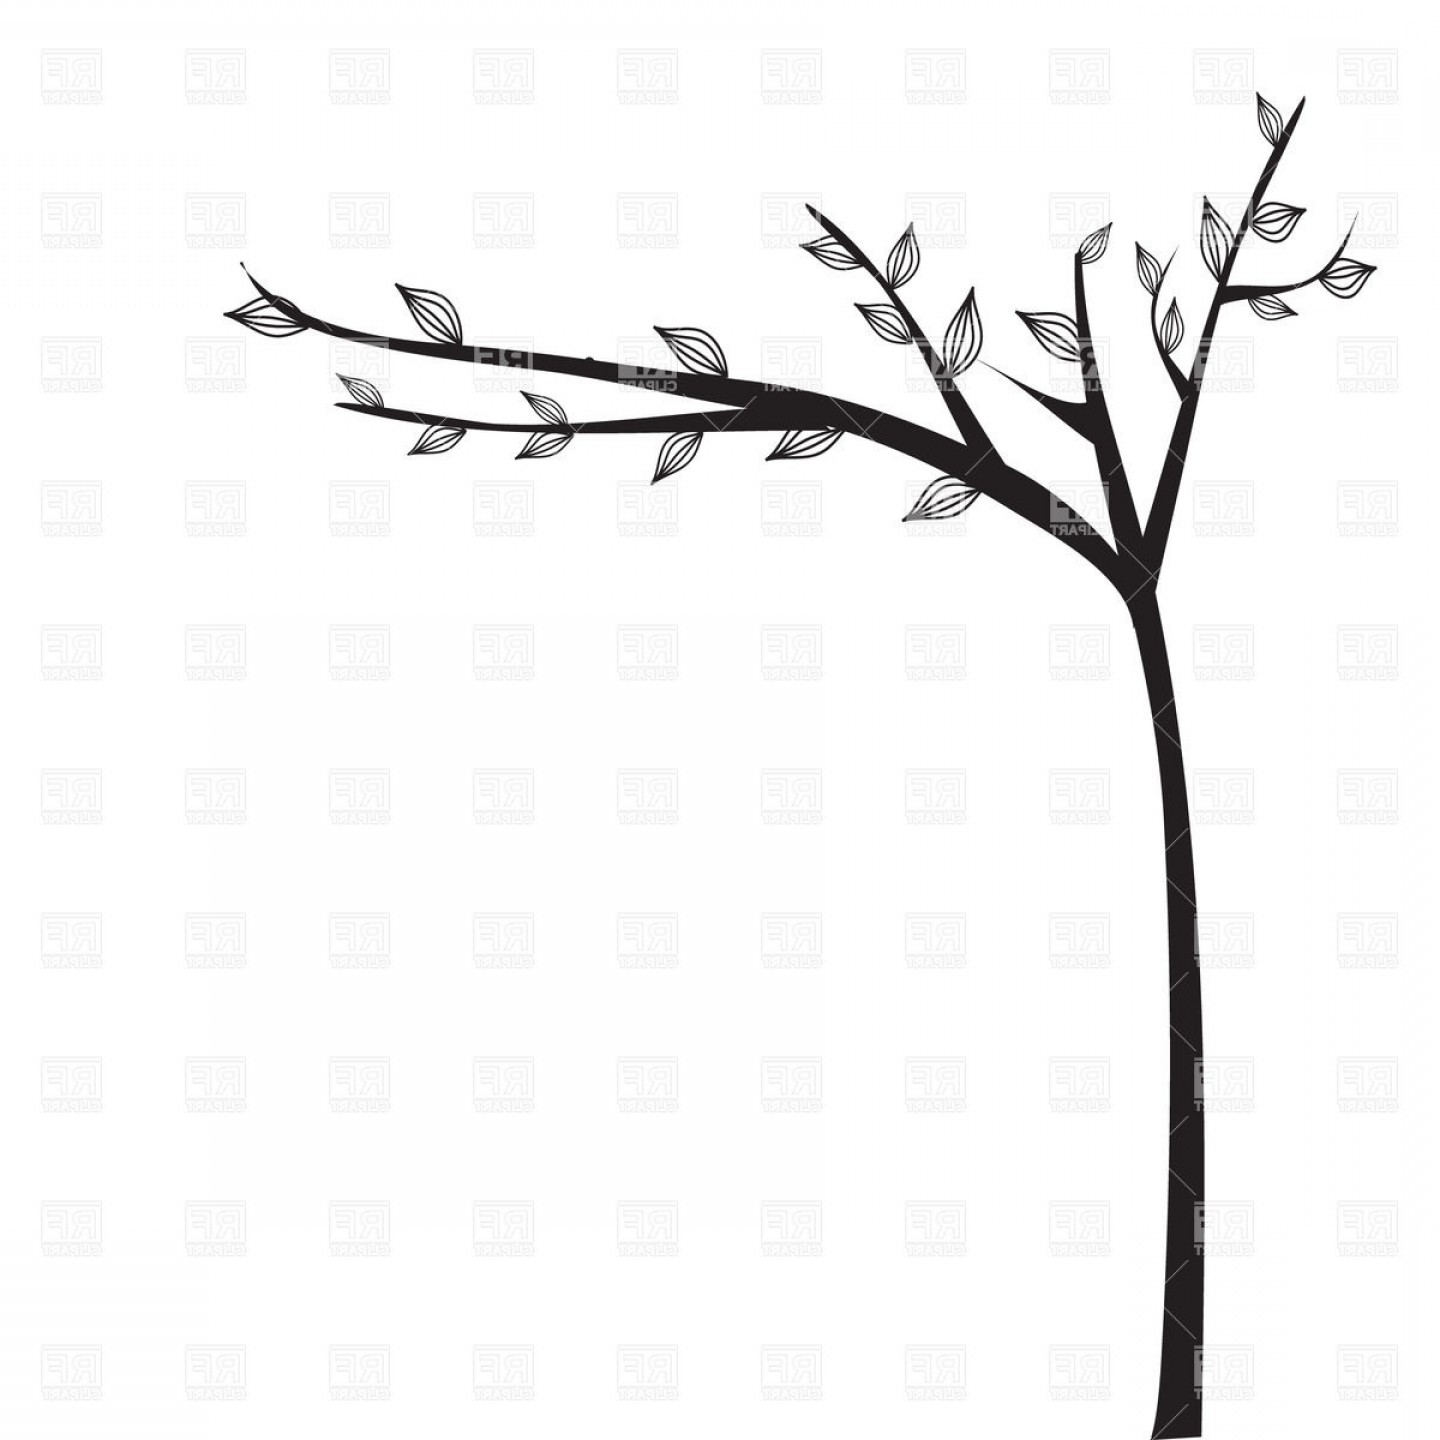 Tree Silhouette Vector Clip Art: Abstract Black Tree Silhouette Vector Clipart